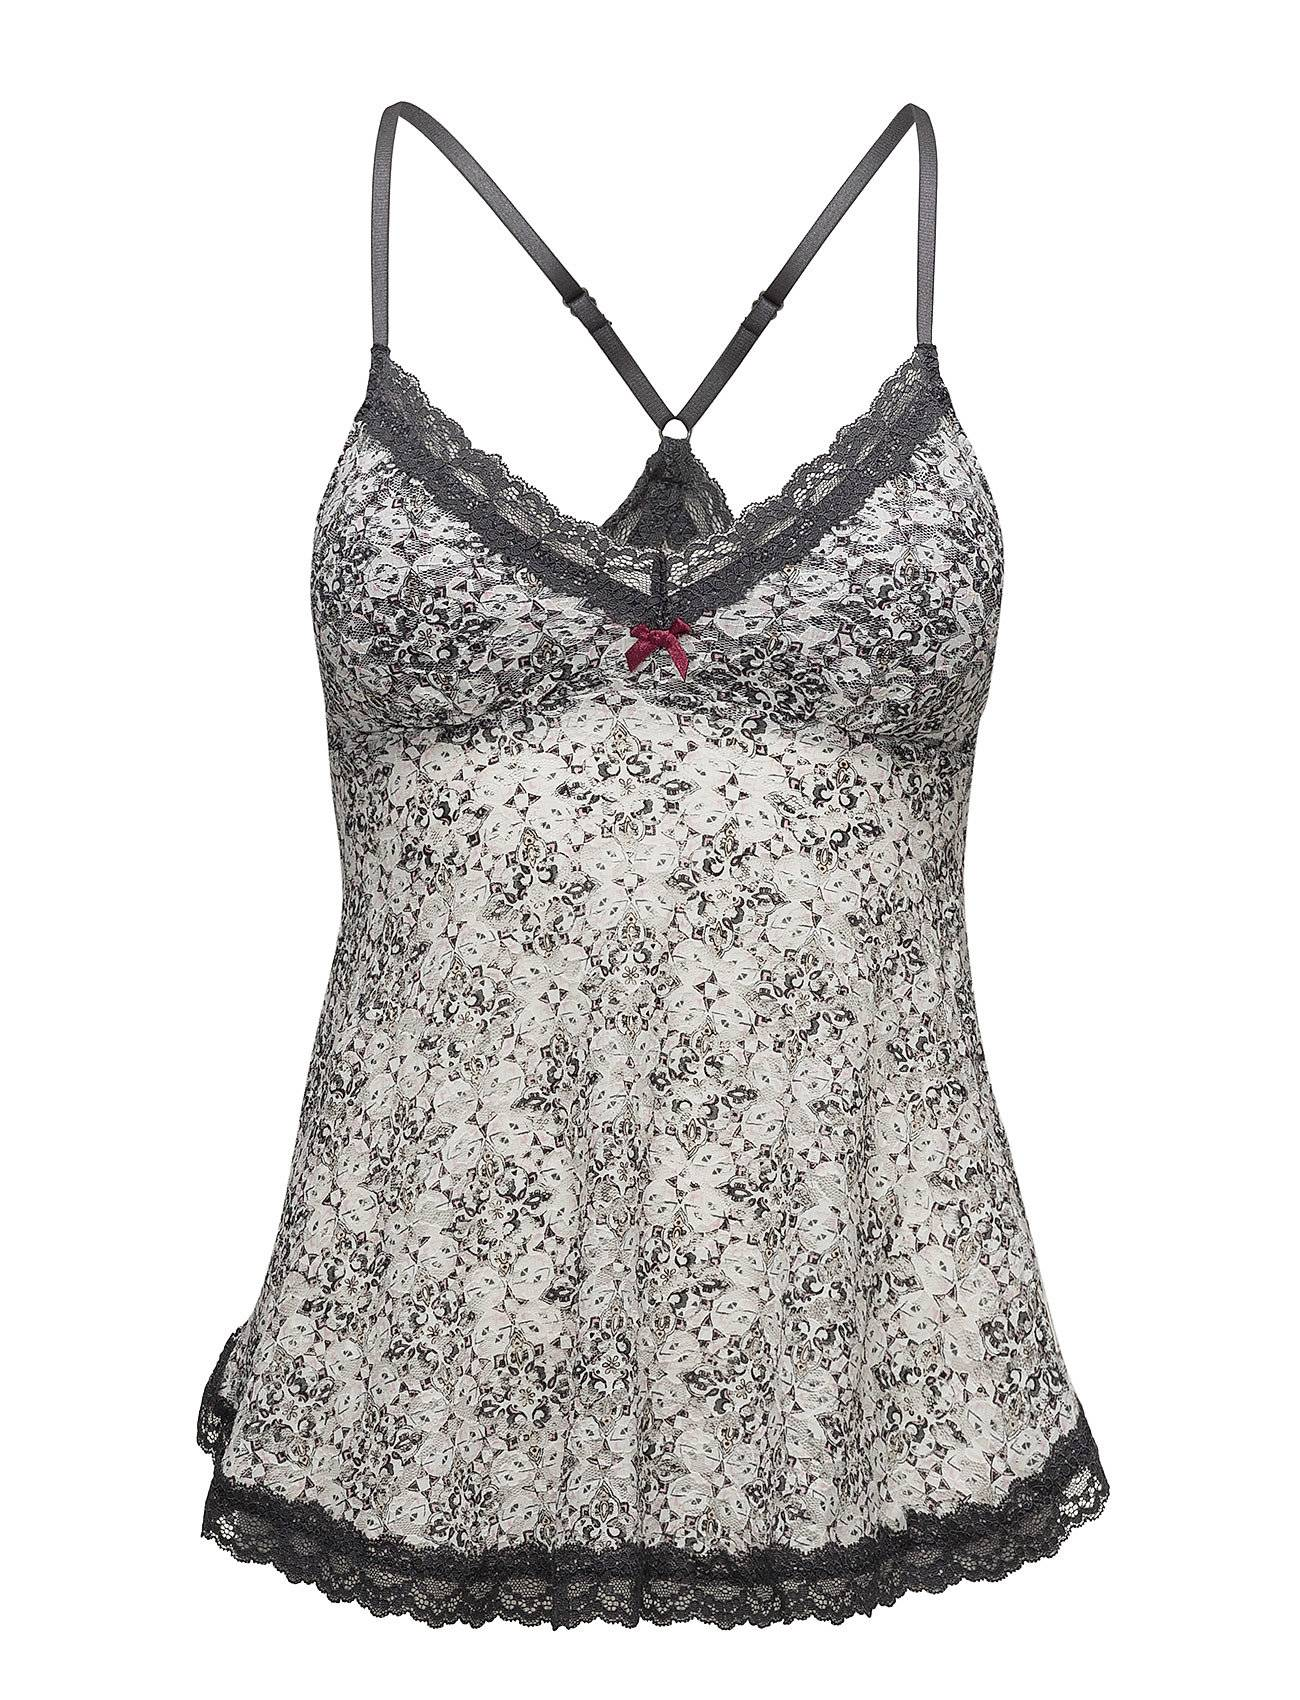 ODD MOLLY UNDERWEAR & SWIMWEAR Printed Lace Oddity Tank Top